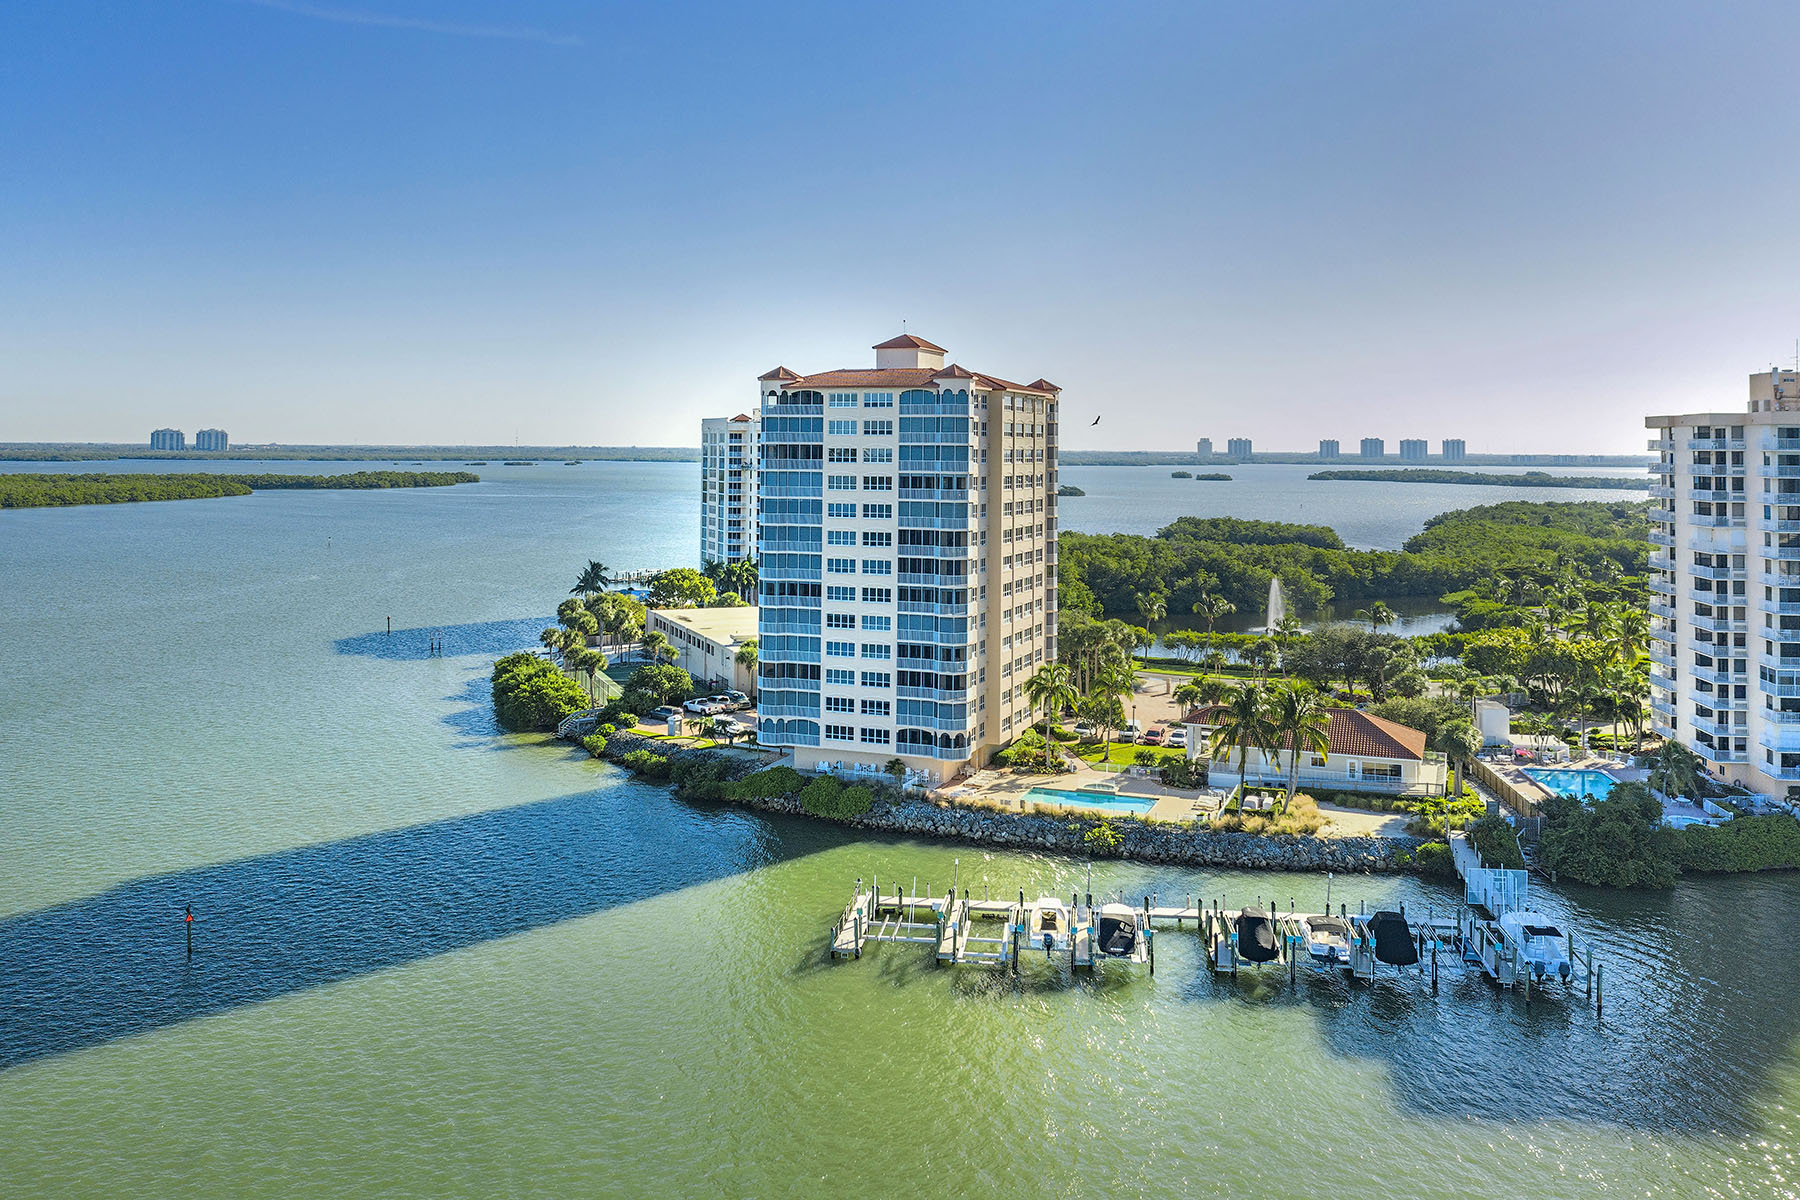 Condominiums for Sale at 8751 Estero Boulevard , 603 Bonita Springs, Florida 33931 United States